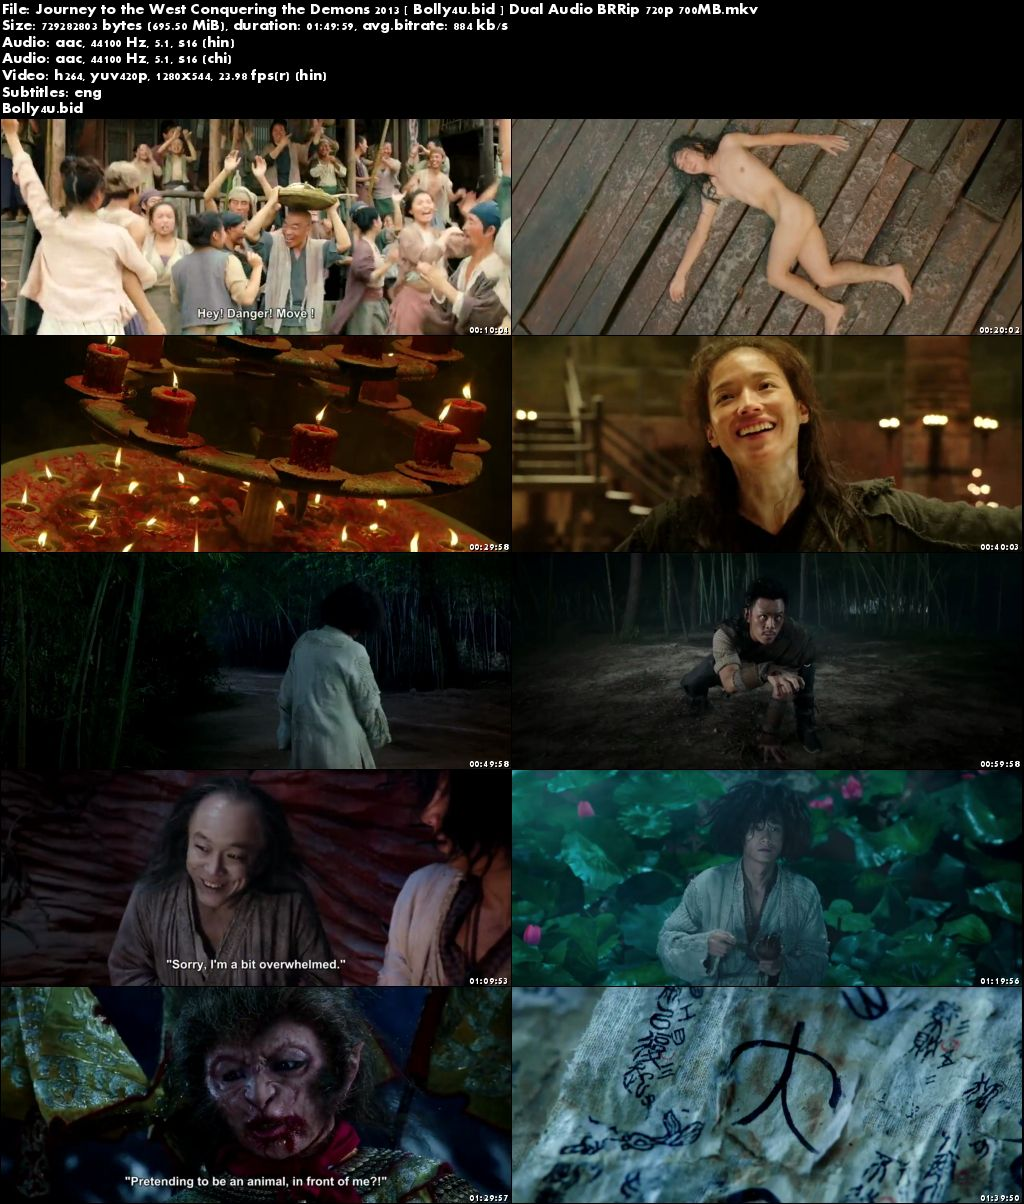 Journey to the West Conquering the Demons 2013 BRRip 700MB Hindi Dual Audio 720p Download